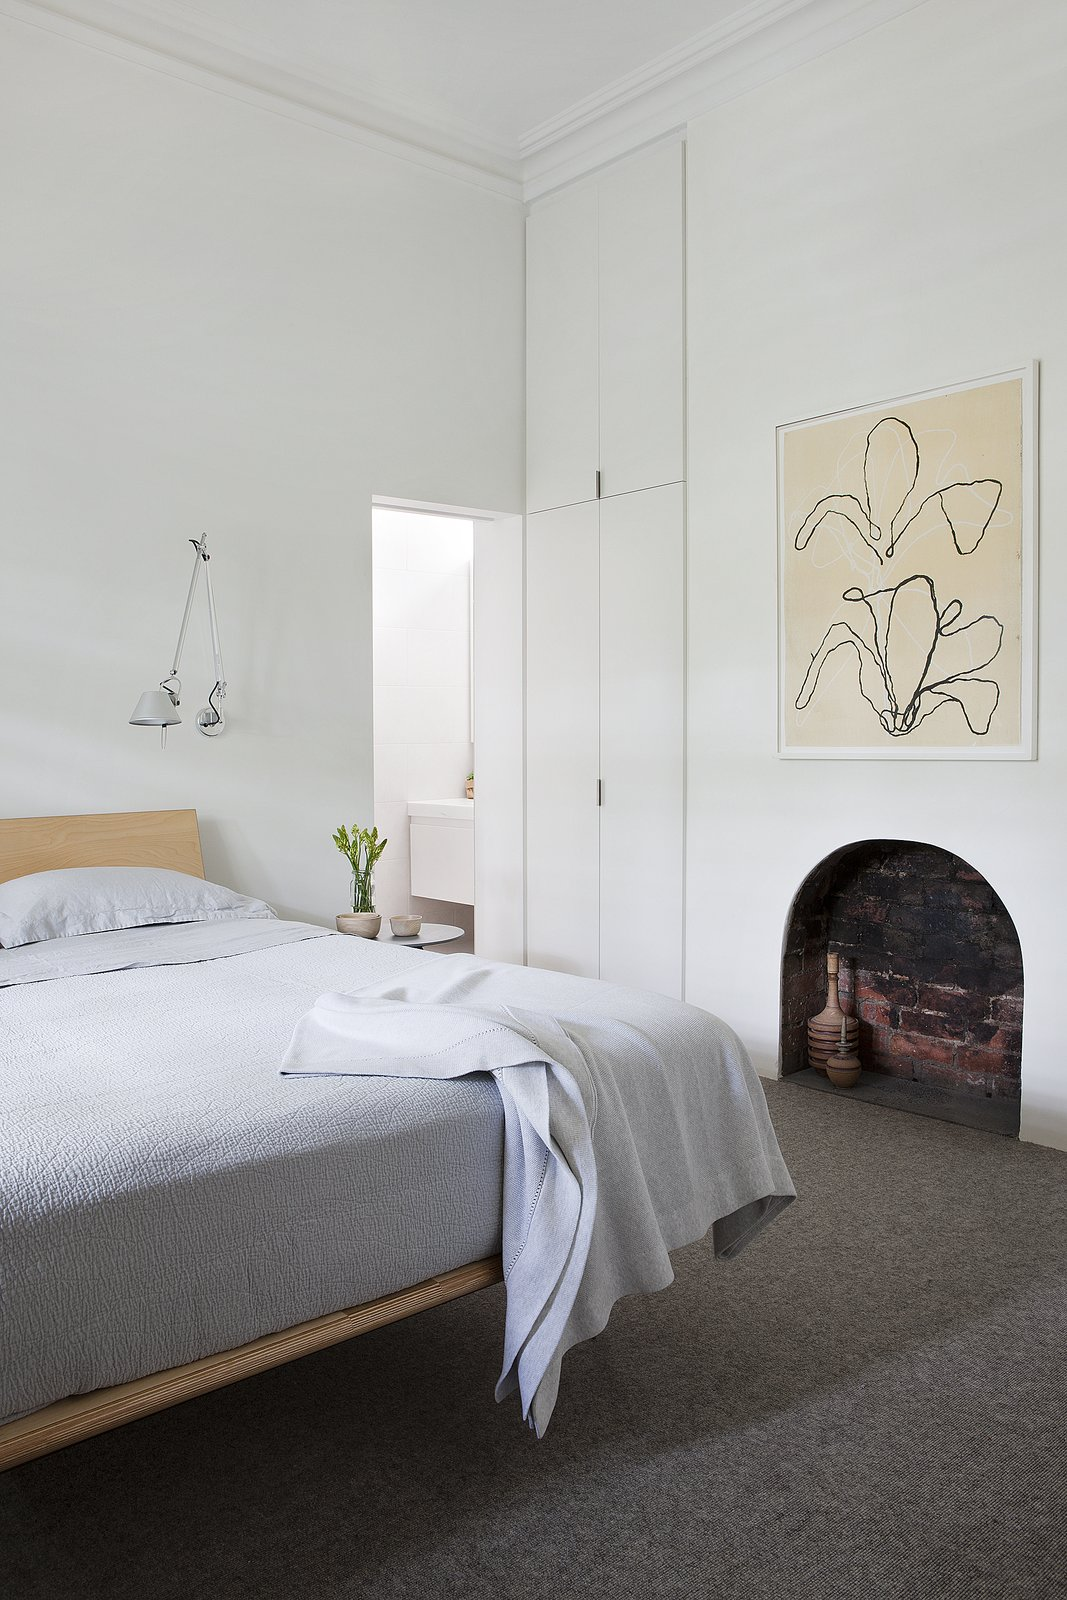 """[W]e didn't need a huge space for our clients to live in harmony, it just needed to be a well thought out space,"" says the architects. A V Leg Bed by George Nelson is a classic addition to the bedroom, along with Tolomeo wall mounted luminaires from Artermide. The artwork is from David Band. Tagged: Bedroom, Bed, Wall Lighting, and Carpet Floor.  Seclusion by Caroline Wallis"